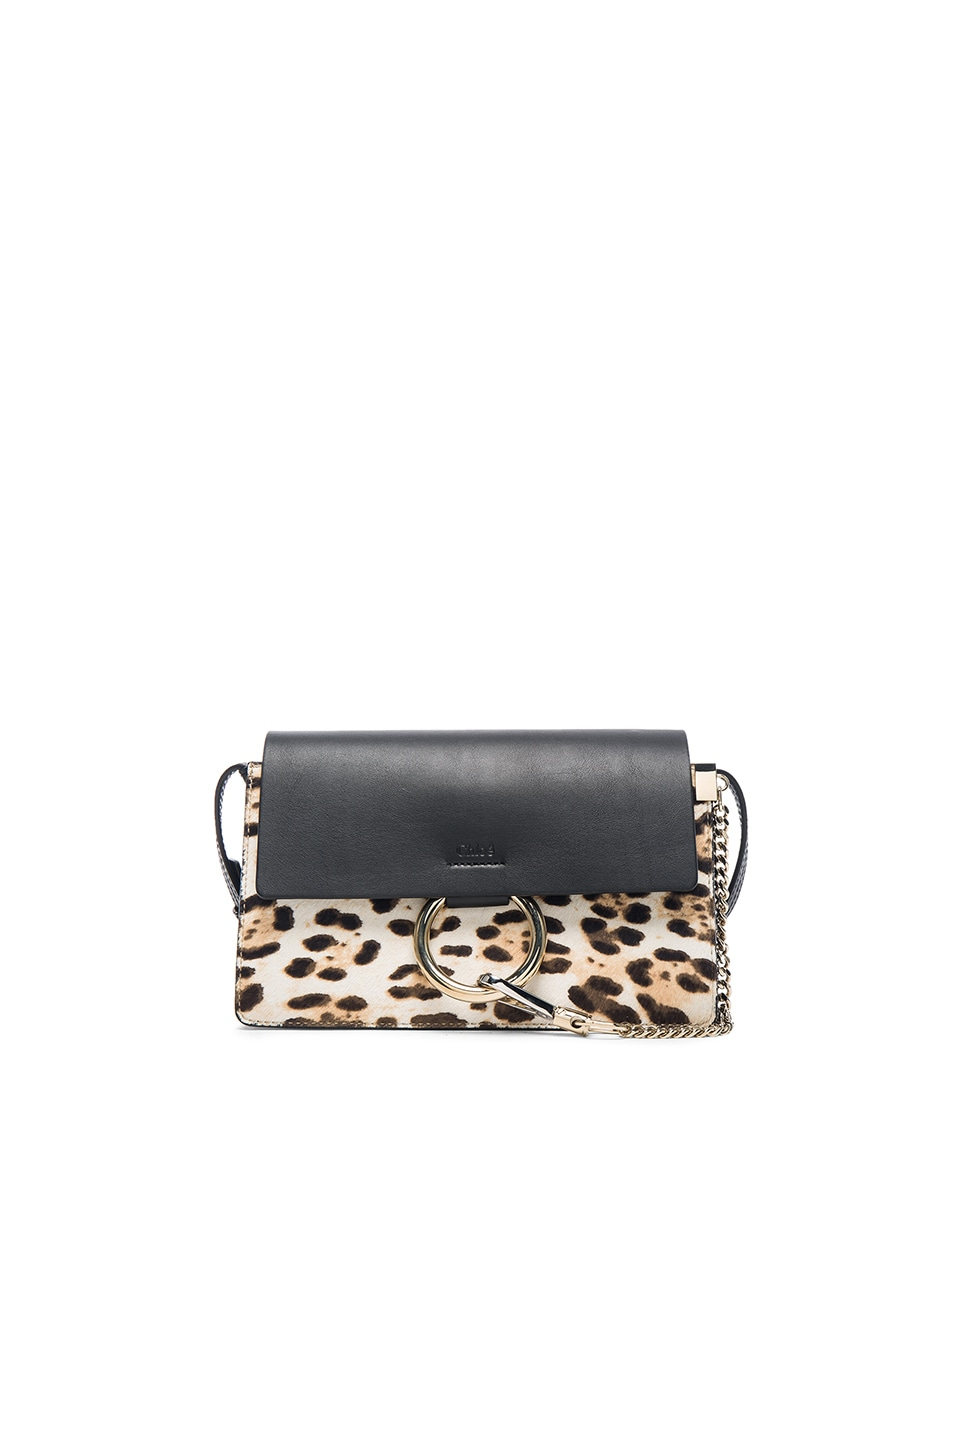 Image 1 of Chloe Small Leopard Print Faye Bag in Abstract White